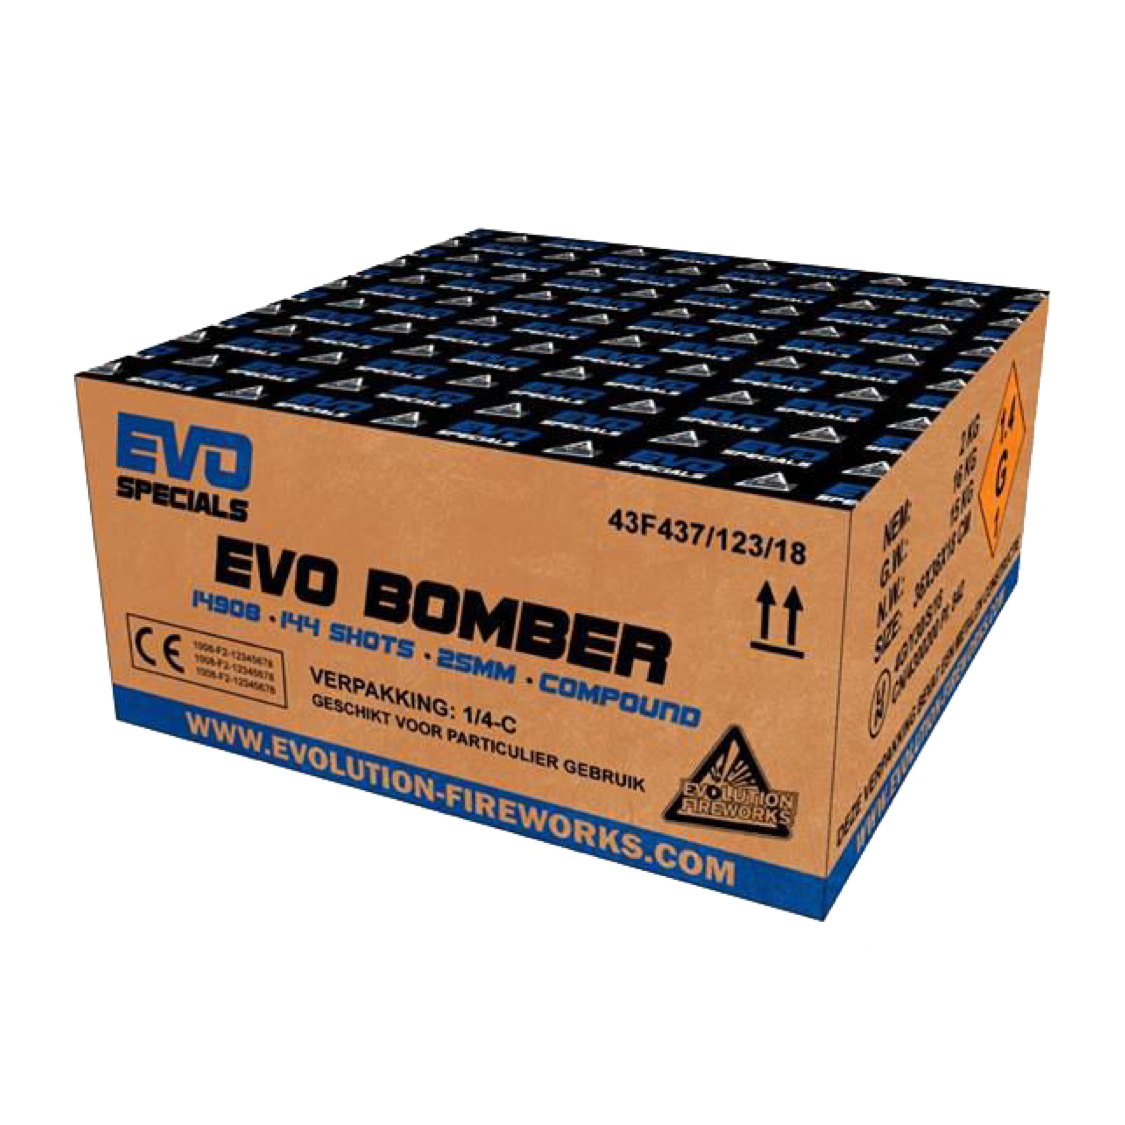 ART. 14908 EVO BOMBER, 144 SHOTS, 25 MM TUBE SIZE